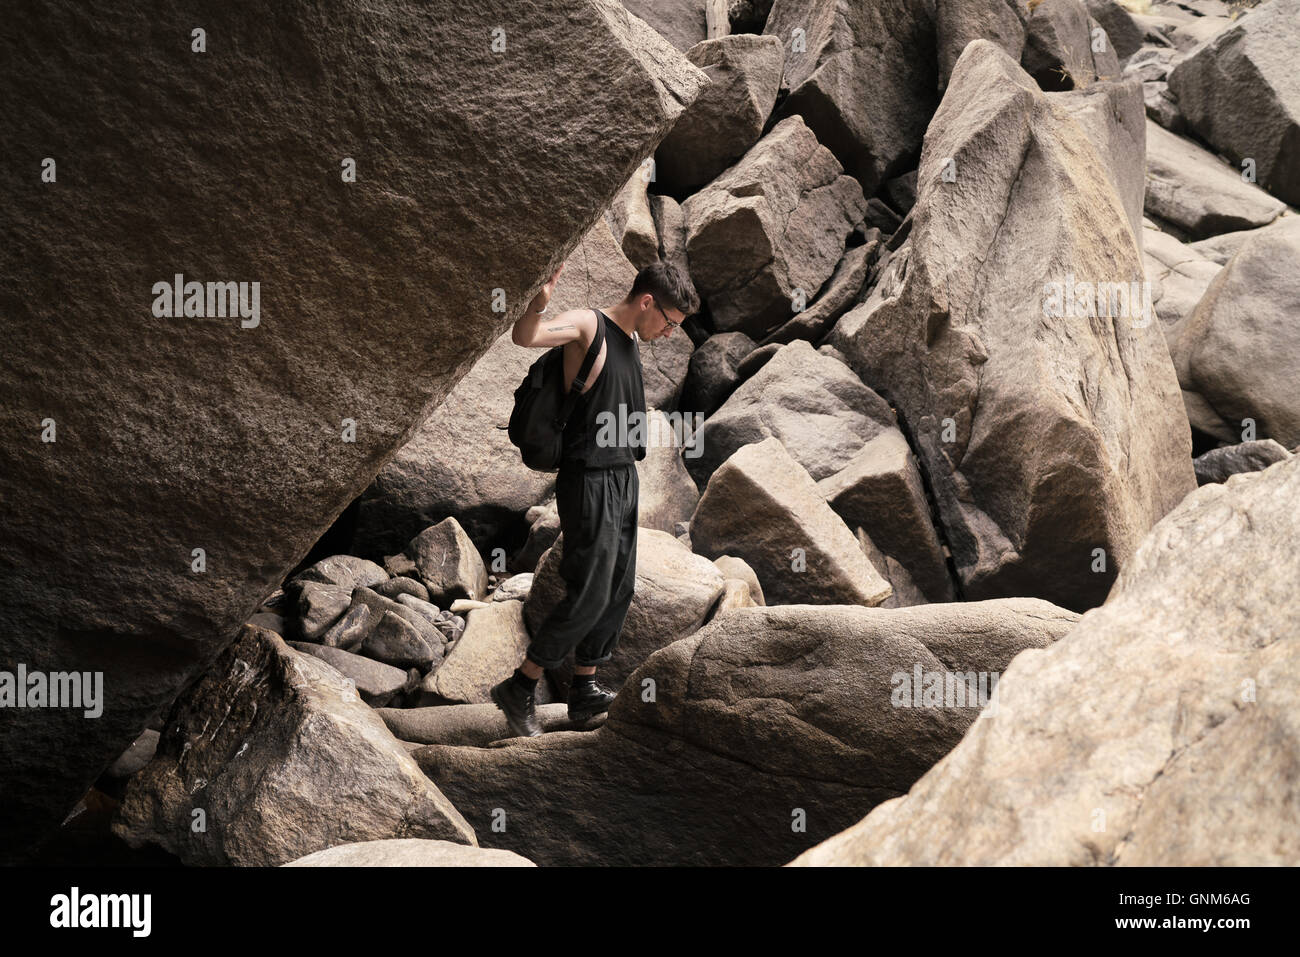 A hiker pauses at boulders in Yosemite National Park - Stock Image